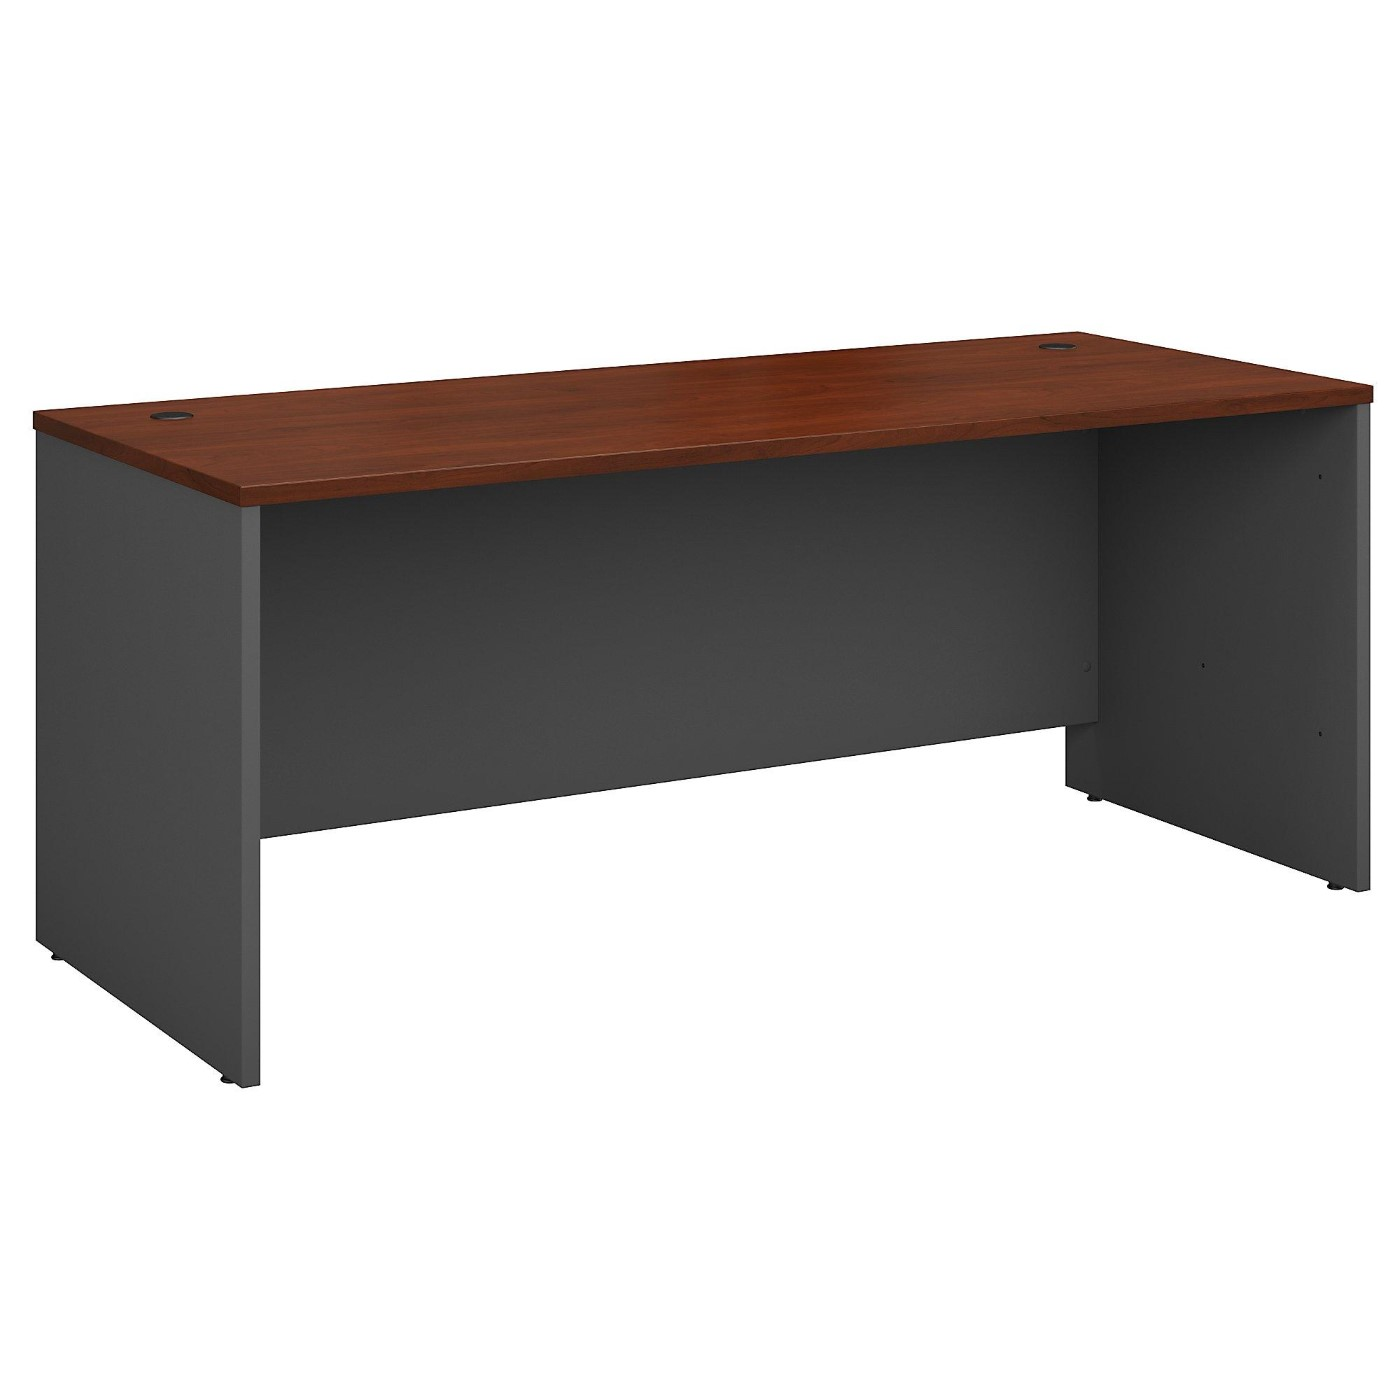 <font color=#c60><b>BUSH BUSINESS FURNITURE SERIES C 72W X 30D OFFICE DESK. FREE SHIPPING</font></b></font></b>